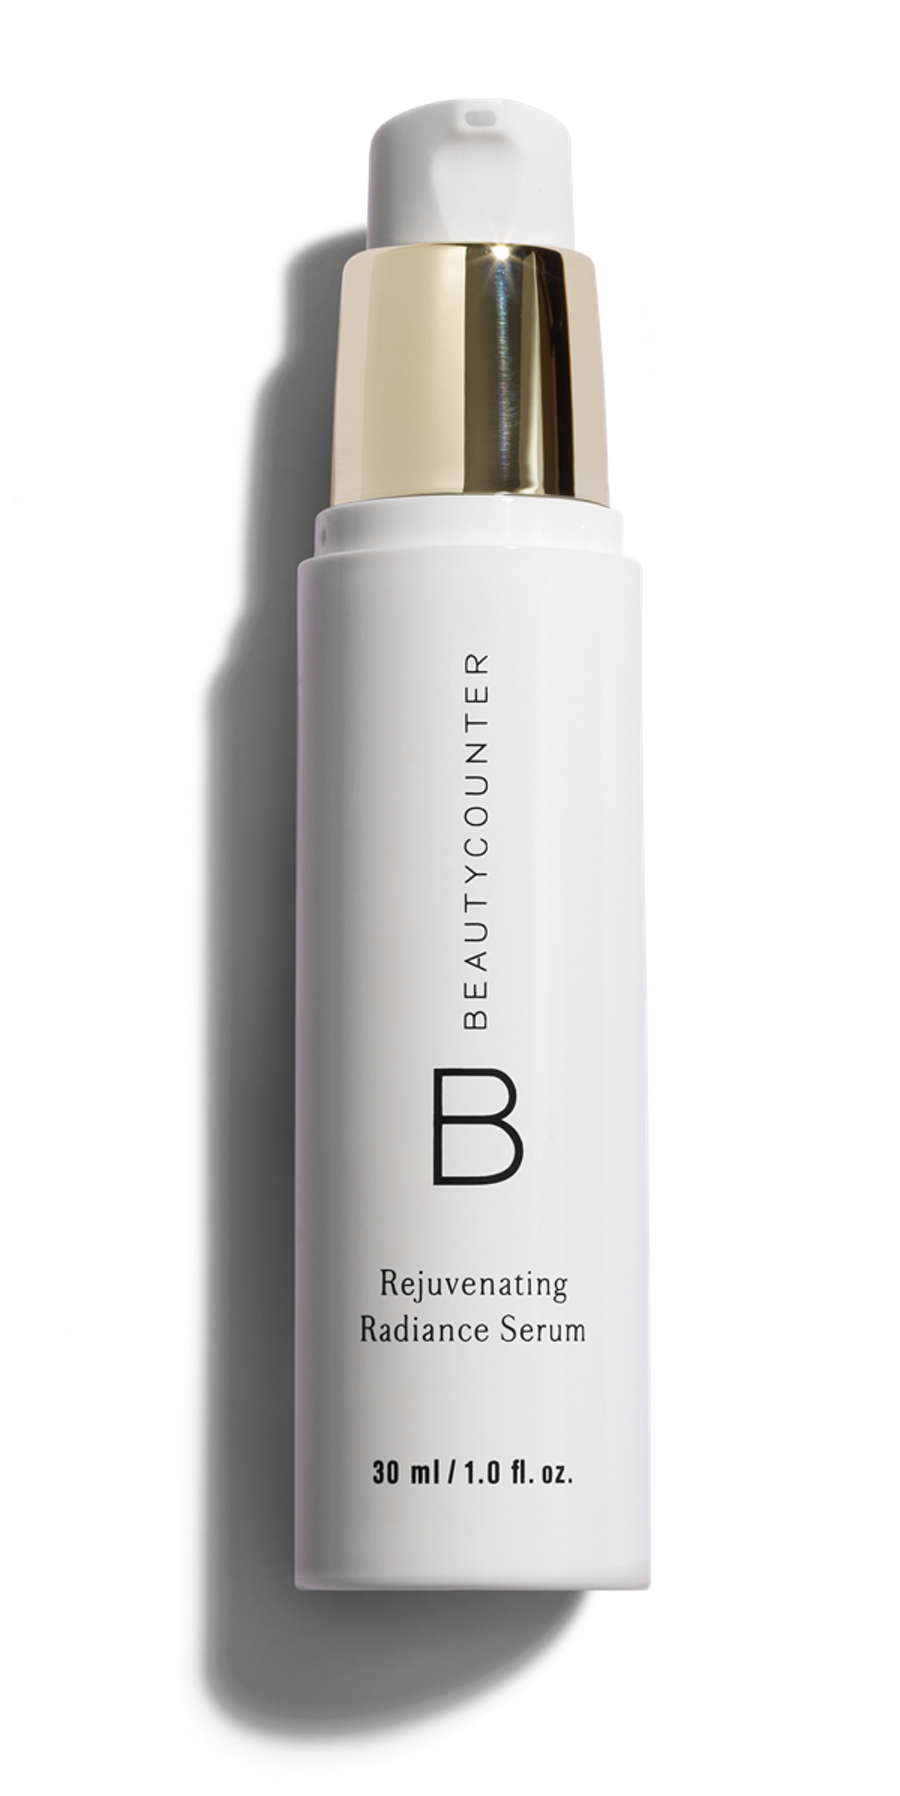 Rejuvenating Radiance Serum